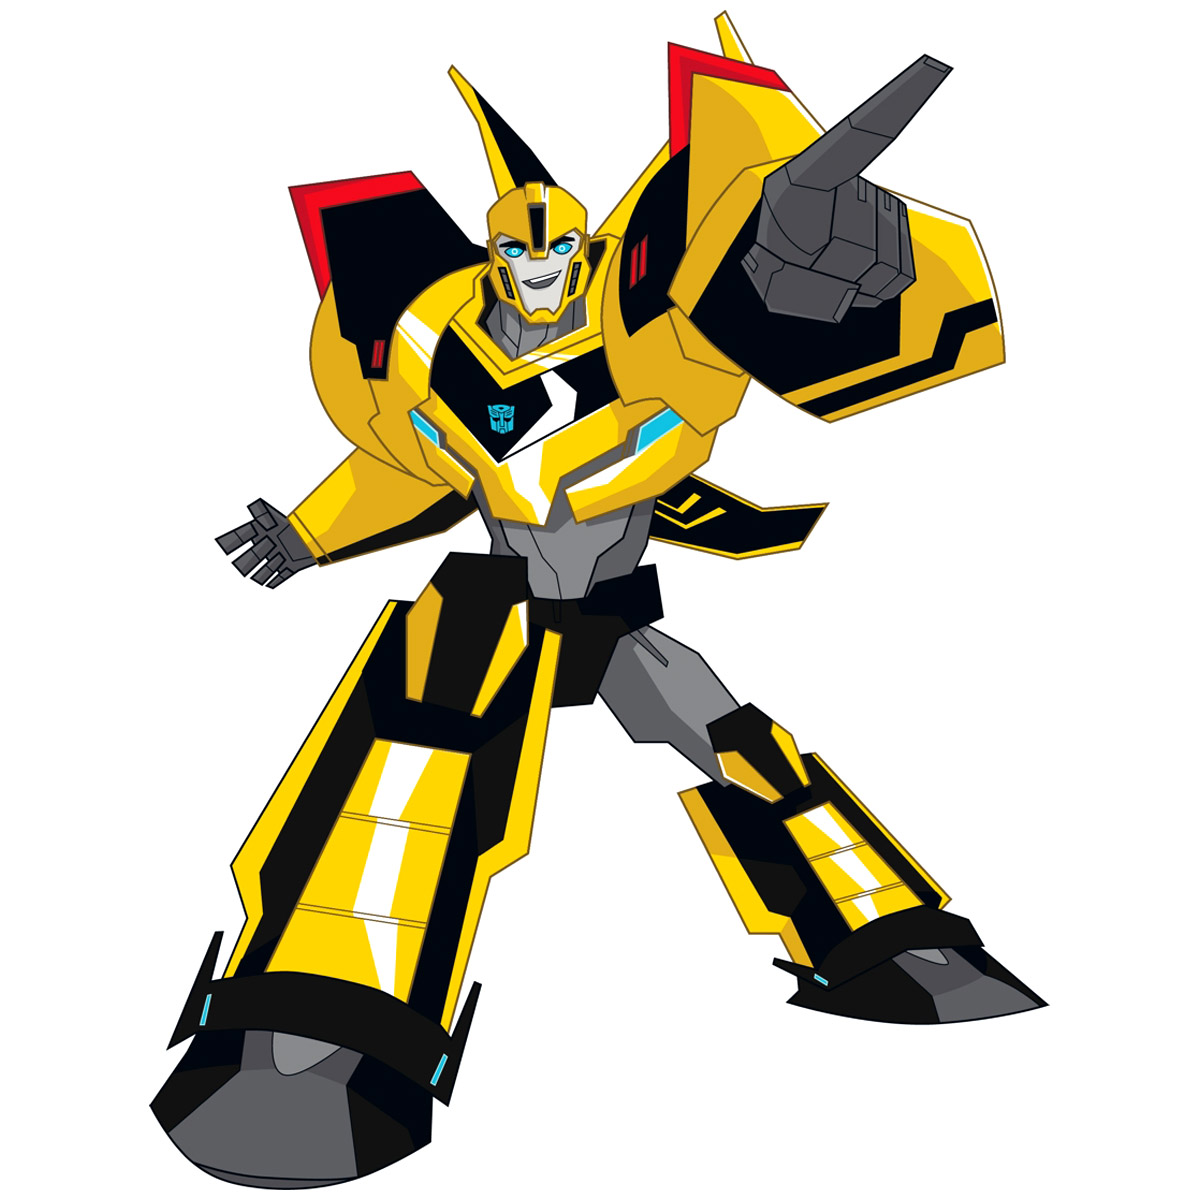 Clipart transformers jpg download Free Transformers Cliparts, Download Free Clip Art, Free Clip Art on ... jpg download